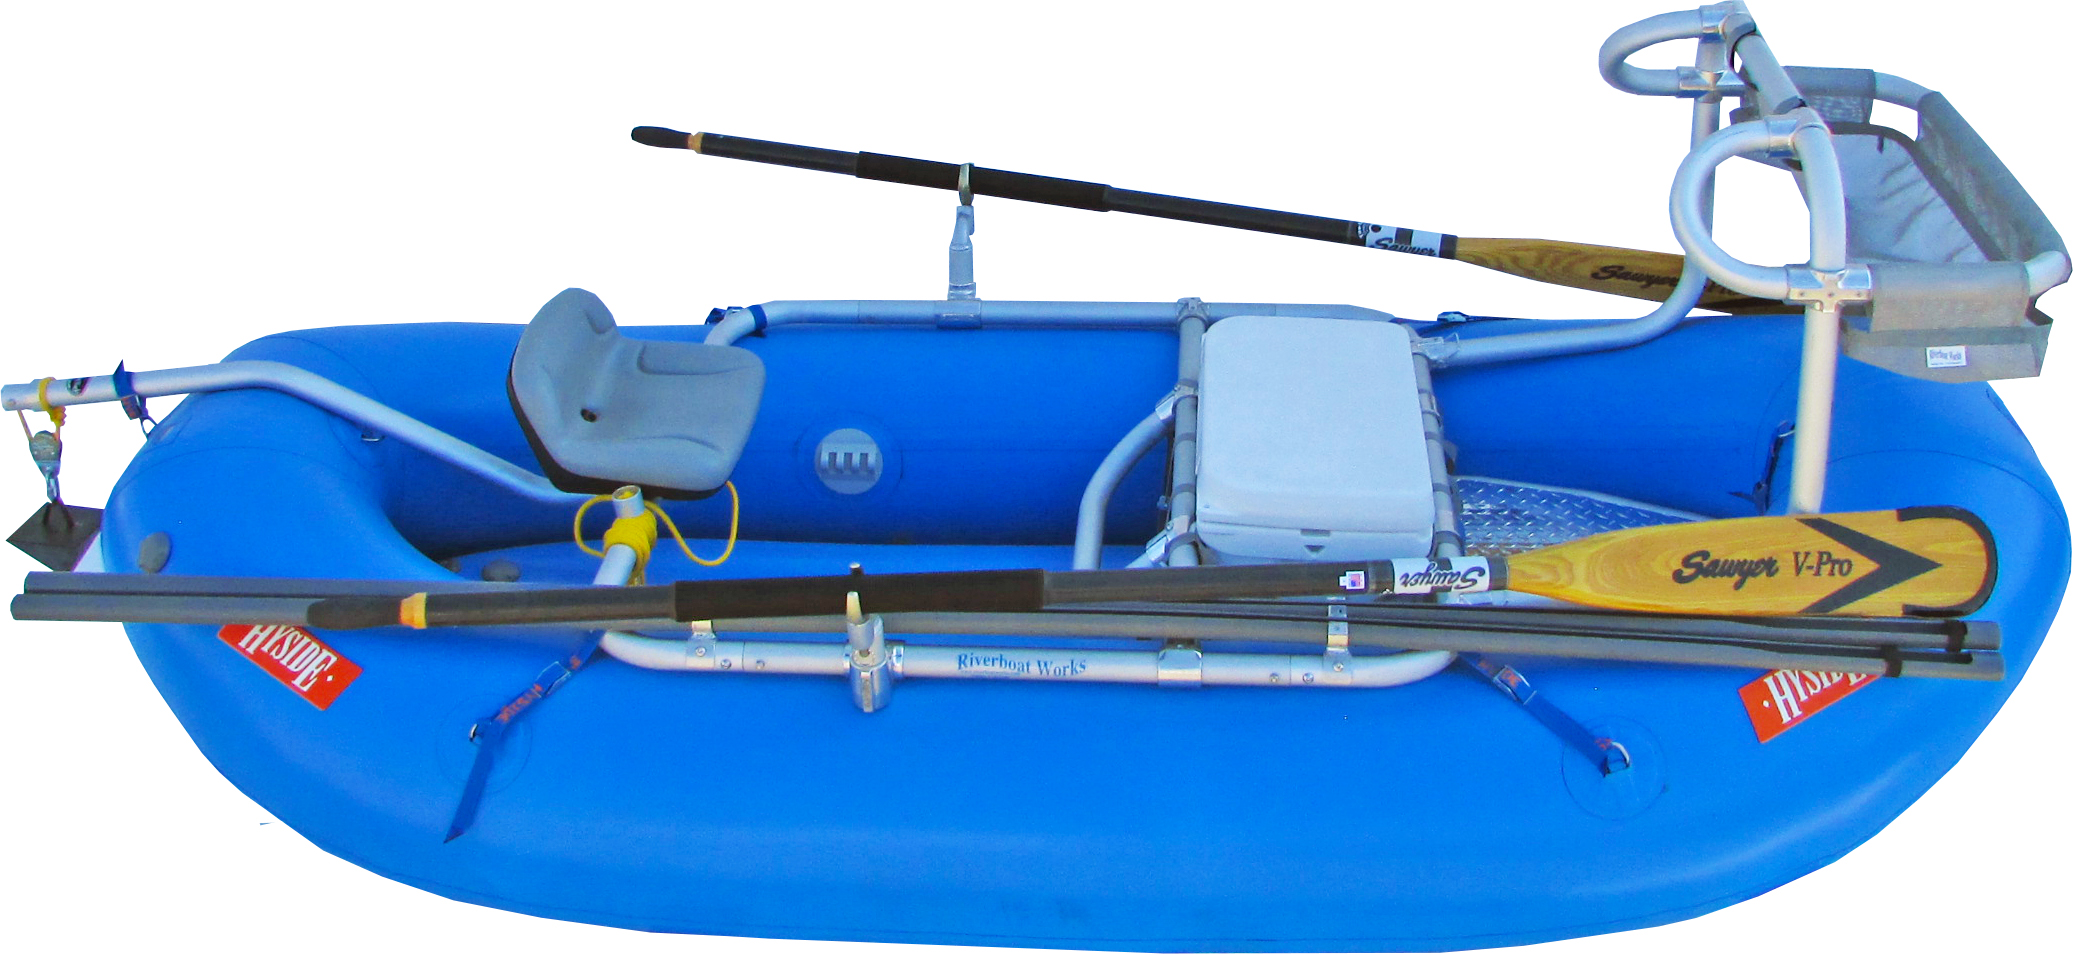 Click image for larger version  Name:raft1.jpg Views:773 Size:1.01 MB ID:9649